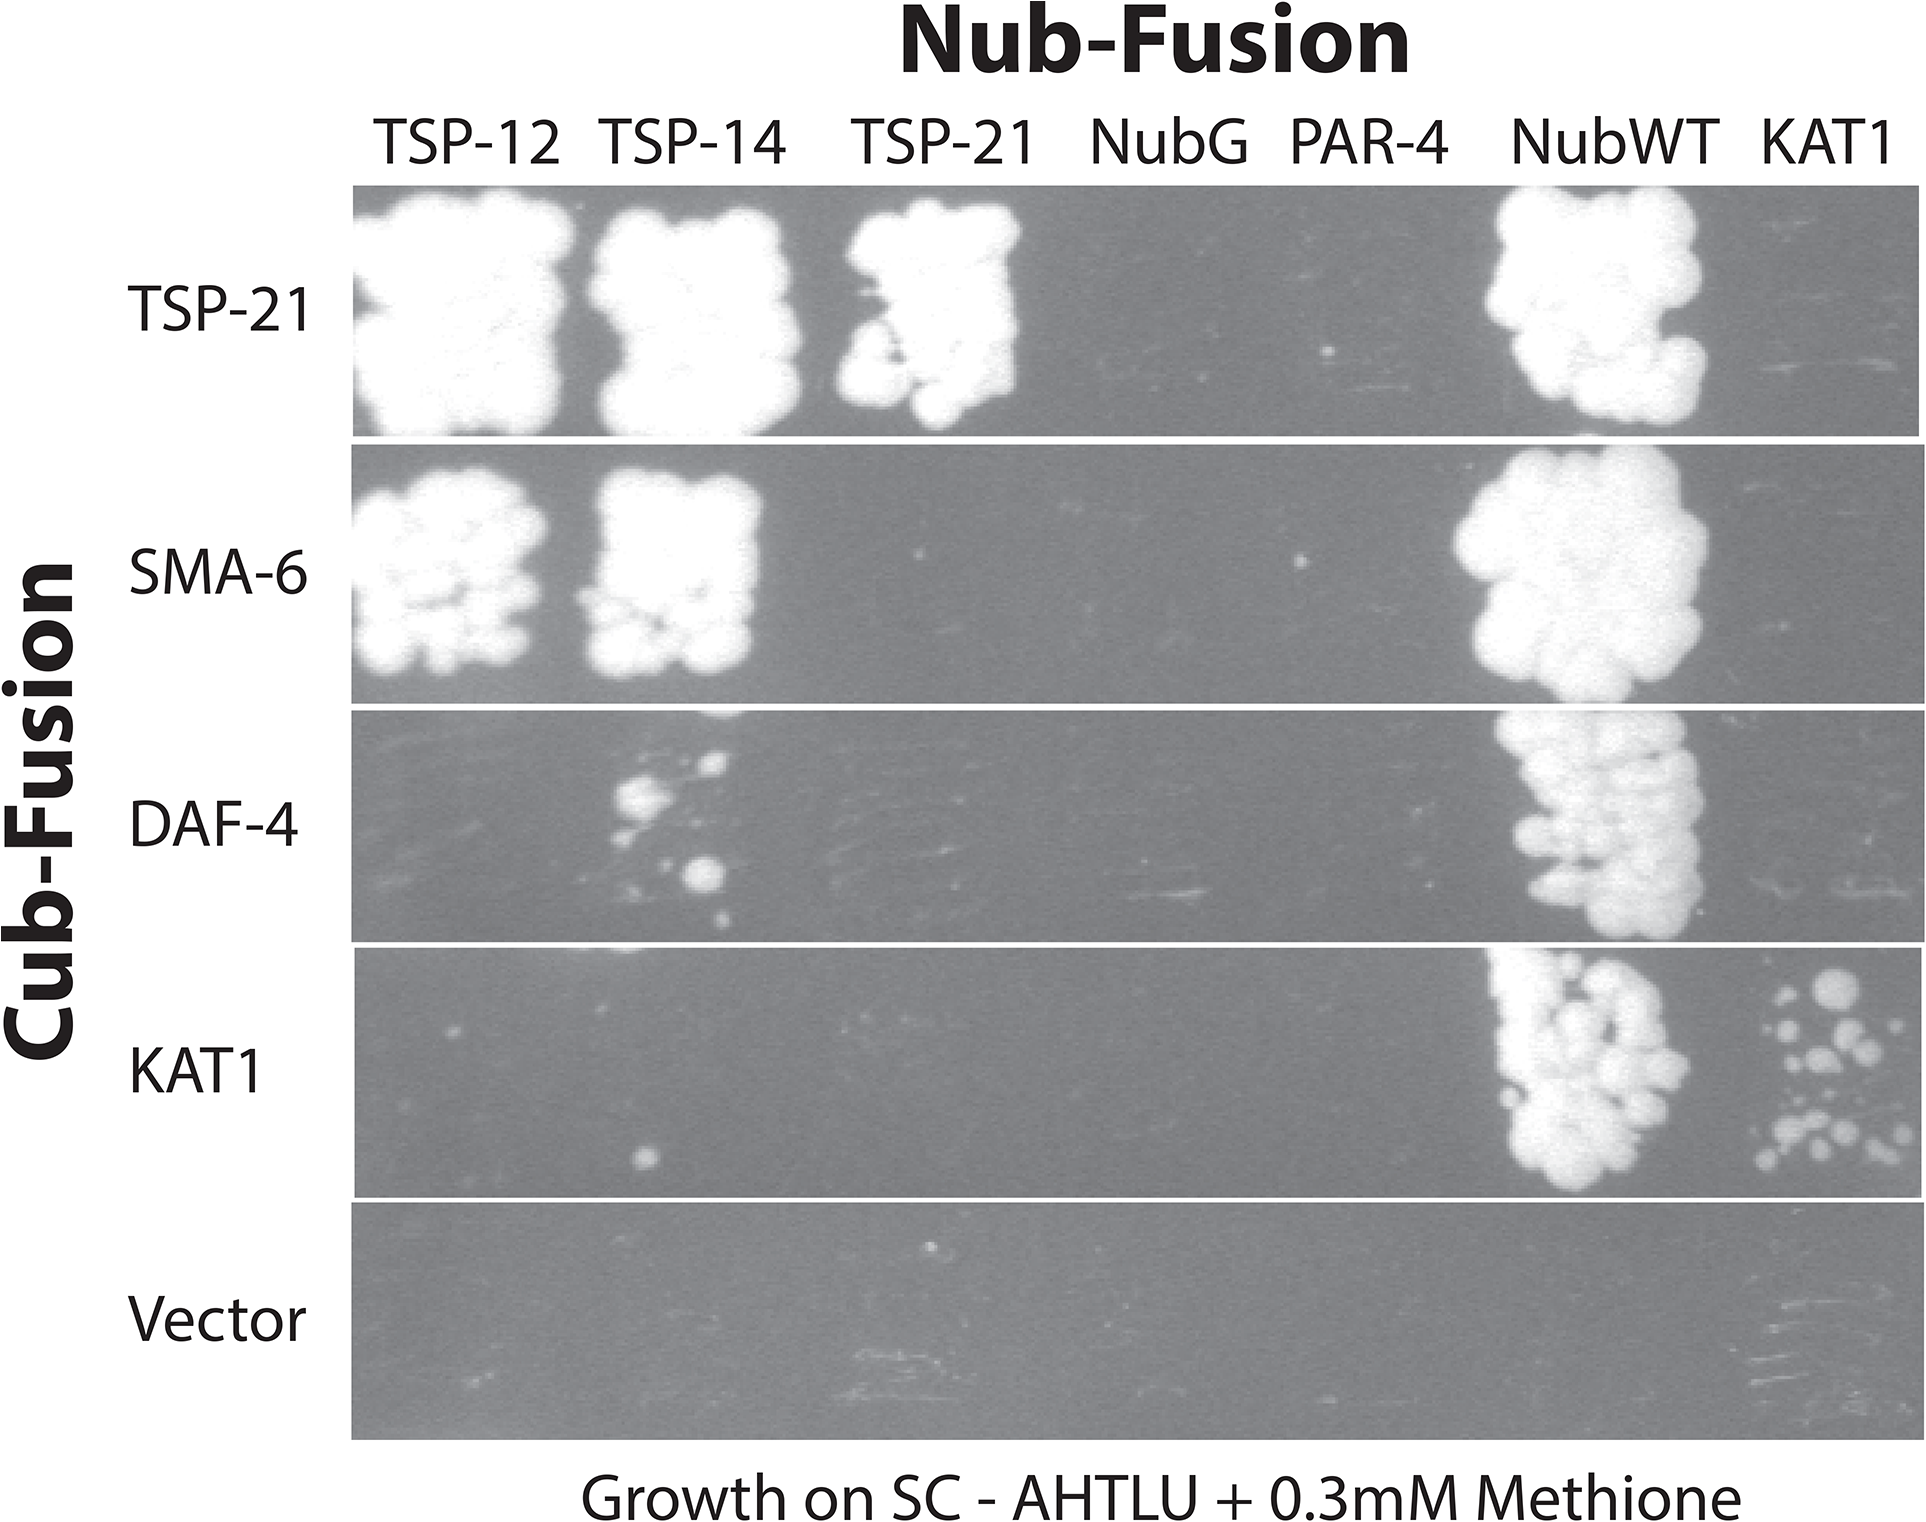 Interactions among TSP-12, TSP-14, TSP-21 and the receptors SMA-6 and DAF-4.